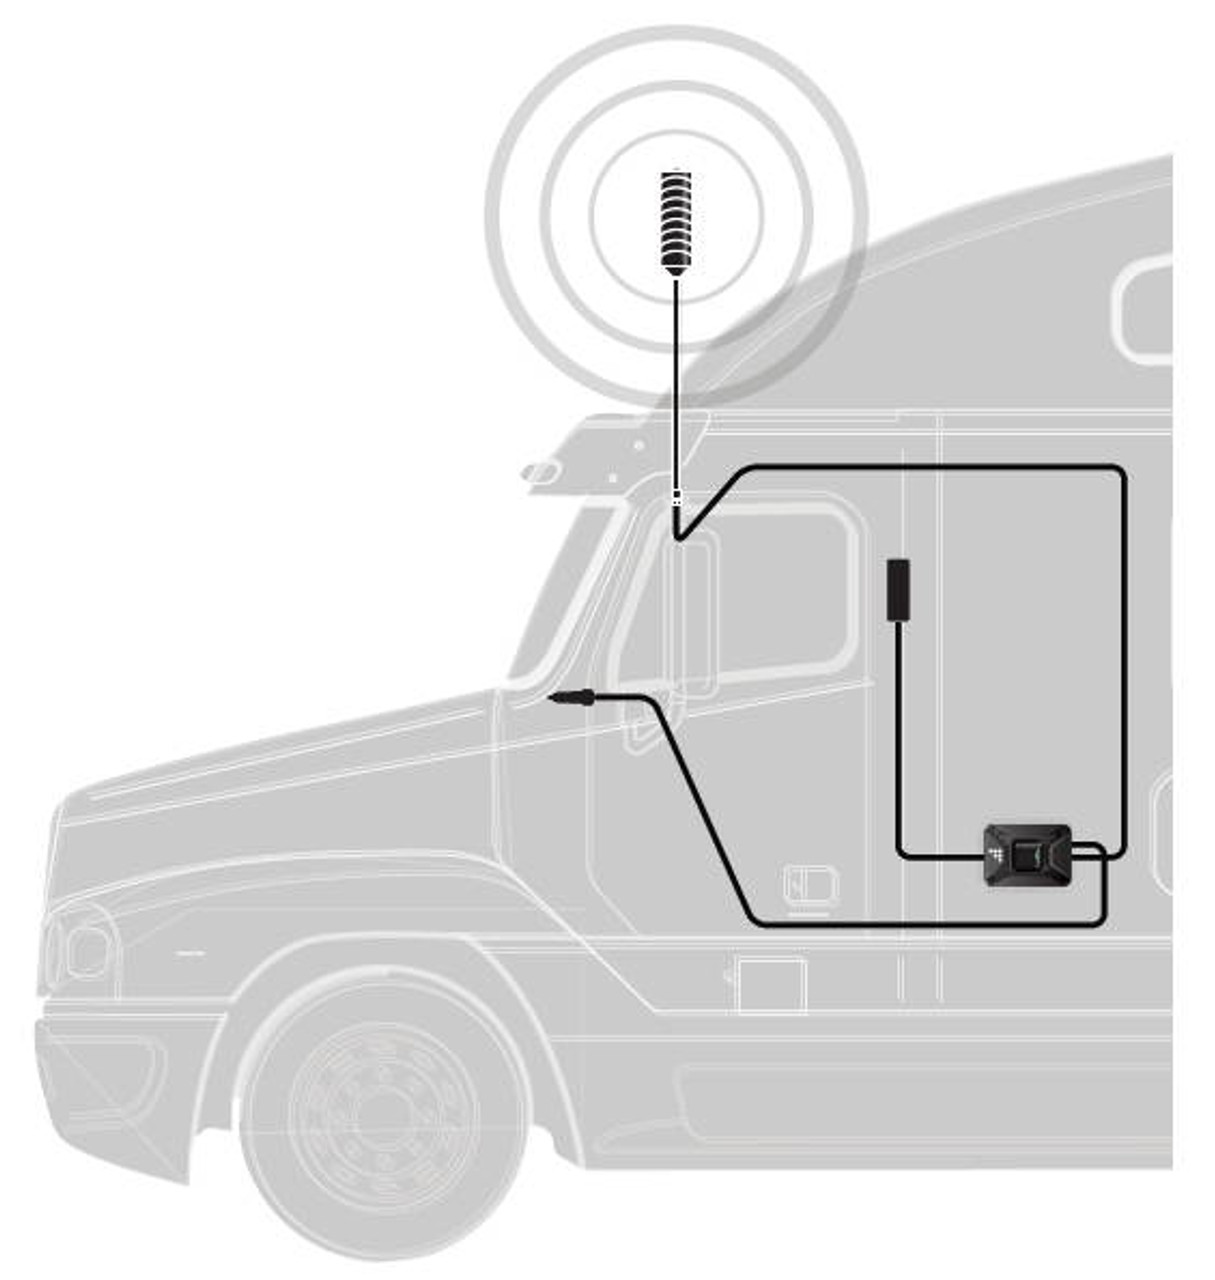 small resolution of weboost drive 4g x otr truck signal booster system diagram